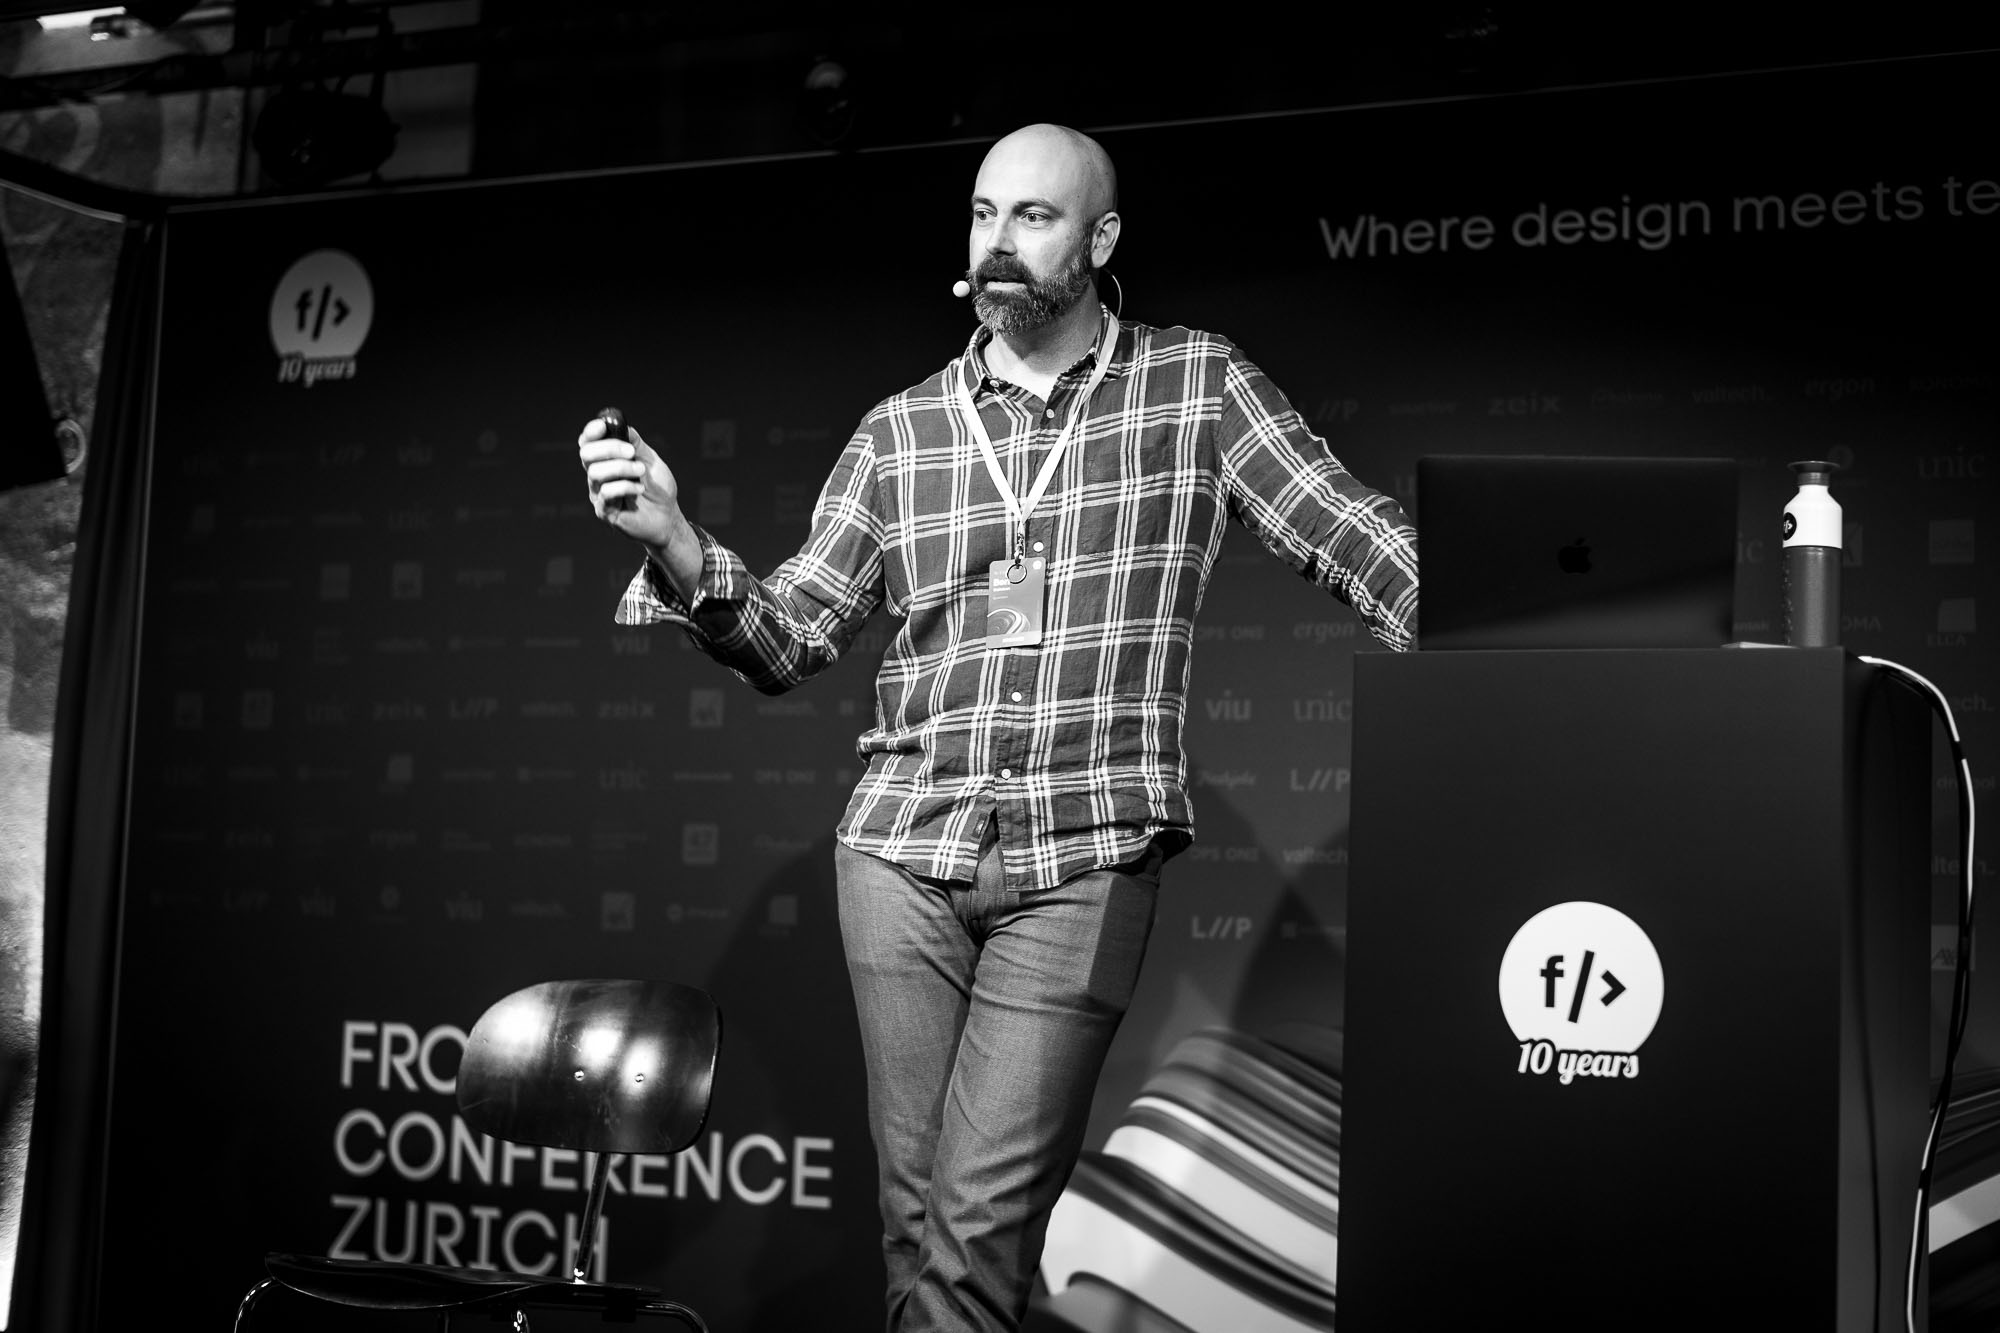 Ben Callahan on stage at Front Conference 2021